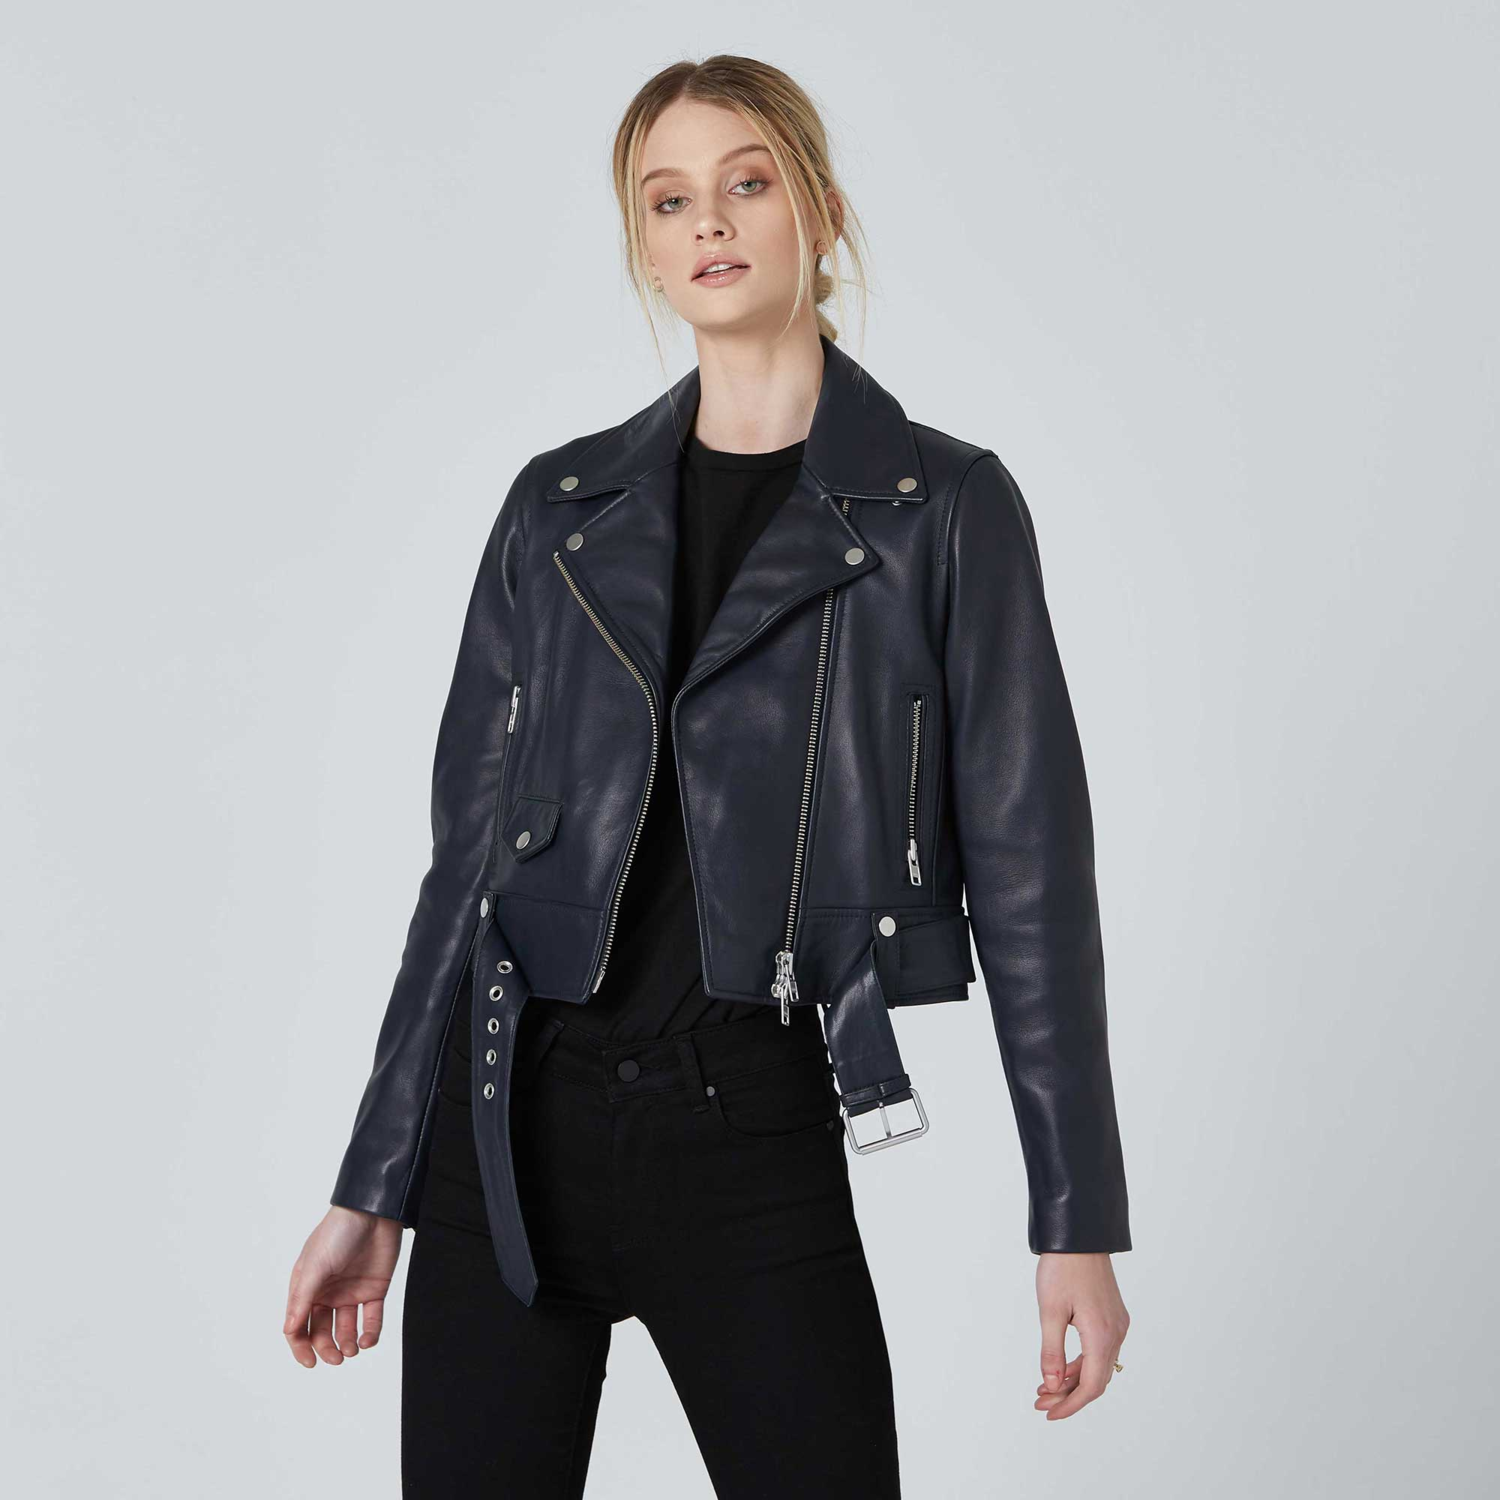 The perfect woman leather jacket ! The leather biker jacket is a French staple: timeless and effortless chic! Selection of the best premium leather jacket at an affordable price - dstld 20% off coupon code womens-leather-biker-jacket-in-blue-product